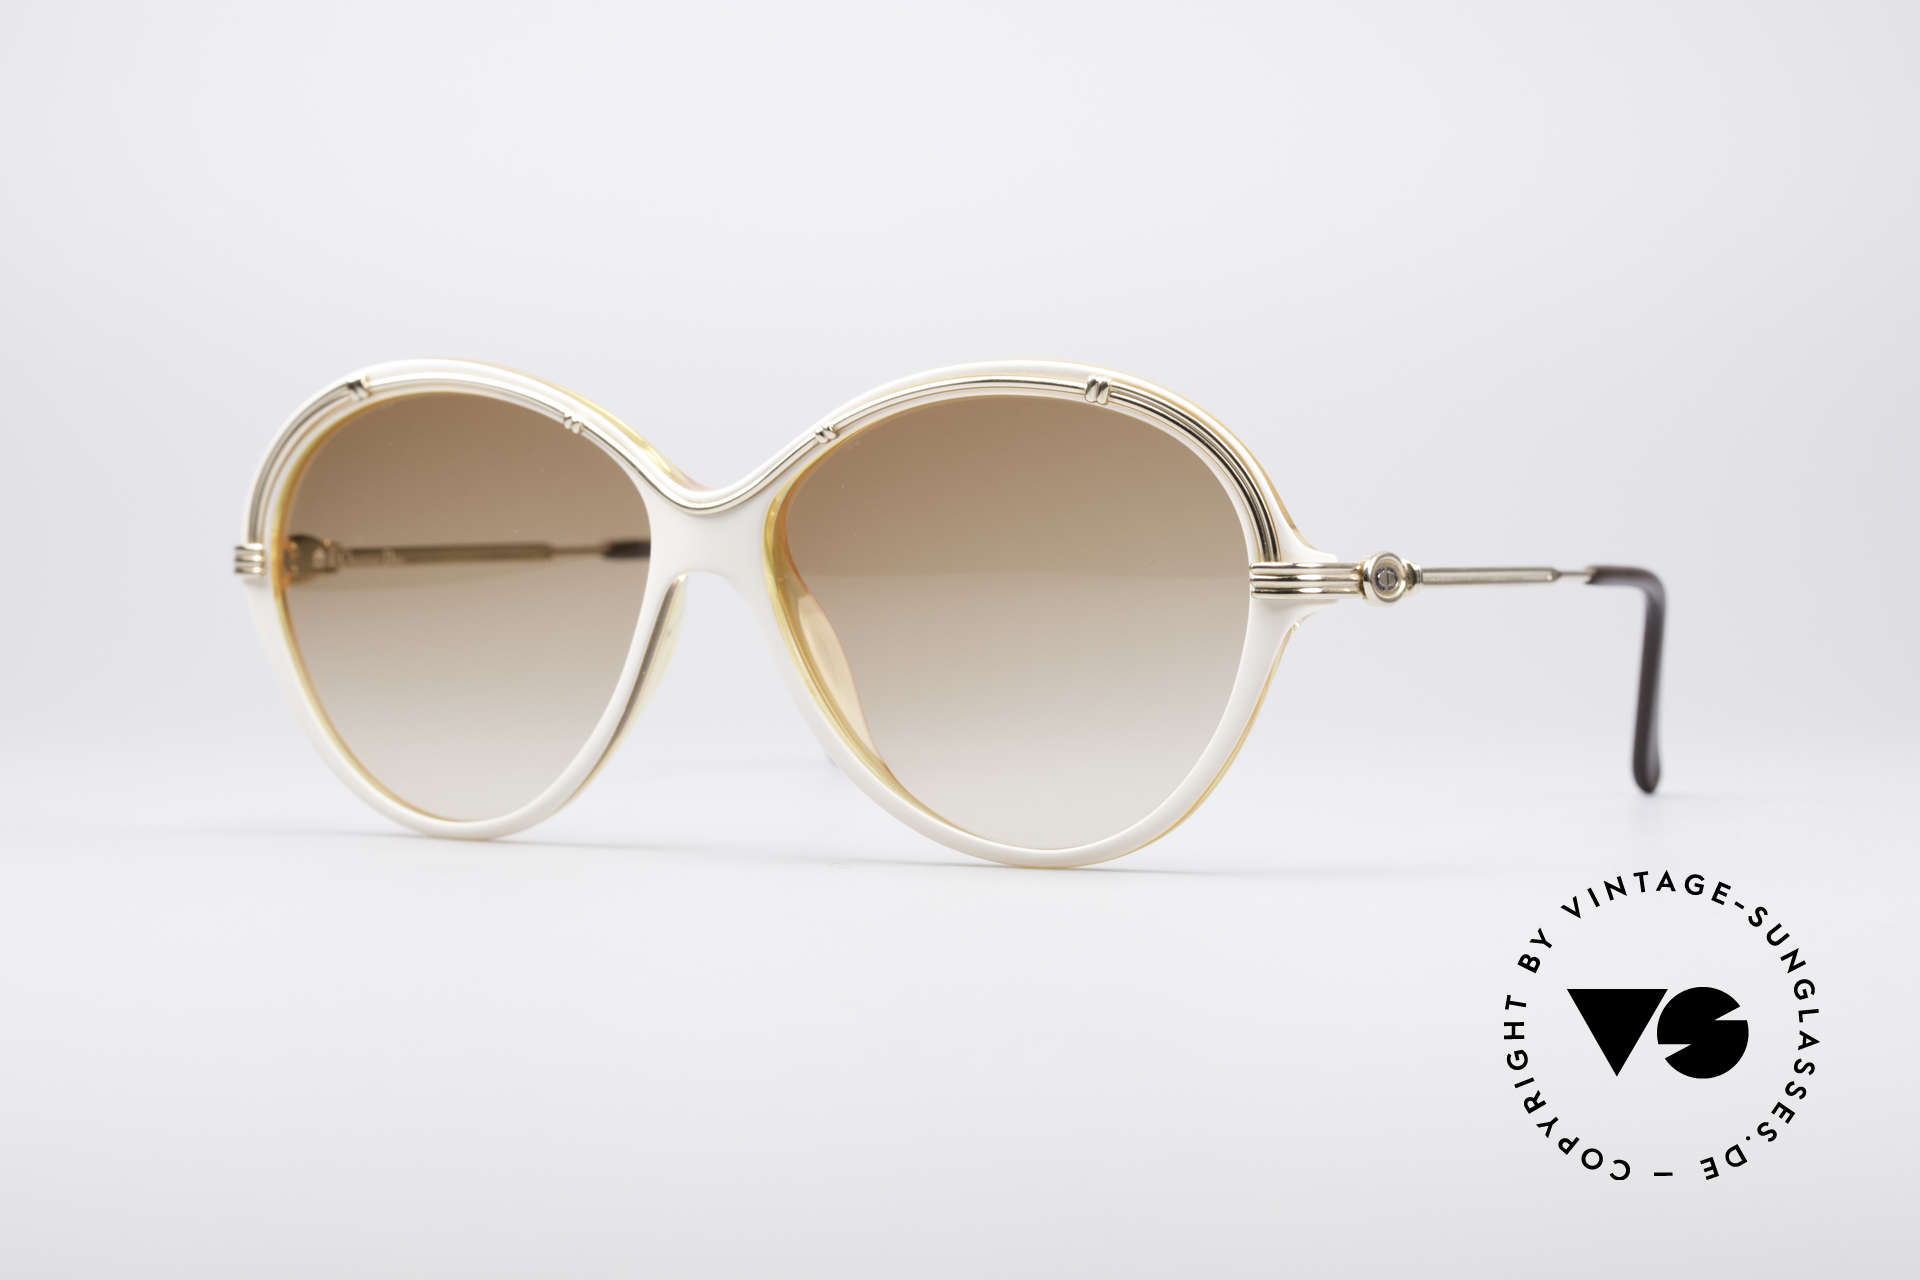 Christian Dior 2251 80's Ladies Shades, enchanting ladies sunglasses by Dior from 1985, Made for Women